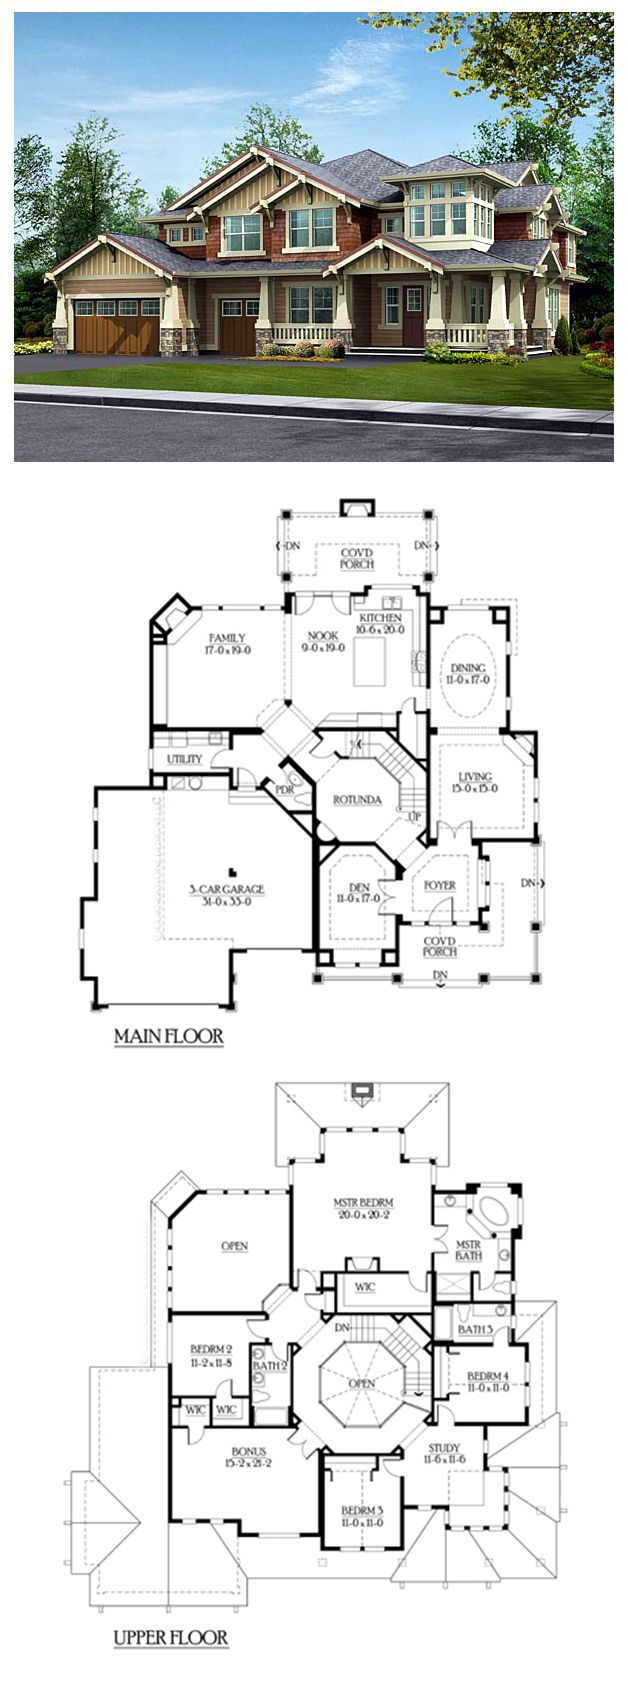 Luxury House Plan 87574 Has 4084 Square Feet Of Living Space, 4 Bedrooms  And Bathrooms With A Craftsman Exterior